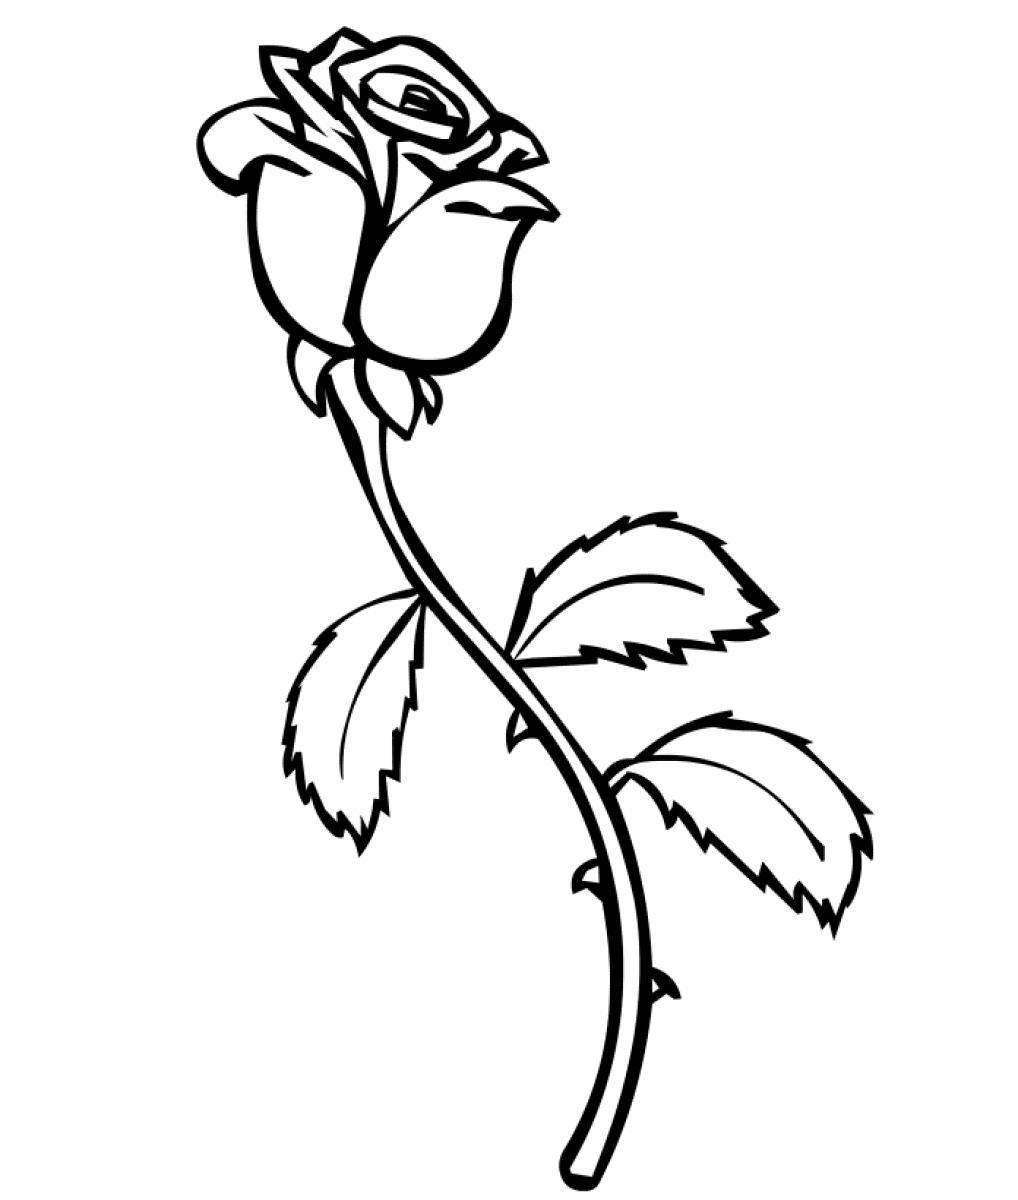 Free Printable Roses Coloring Pages For Kids - Free Printable Roses